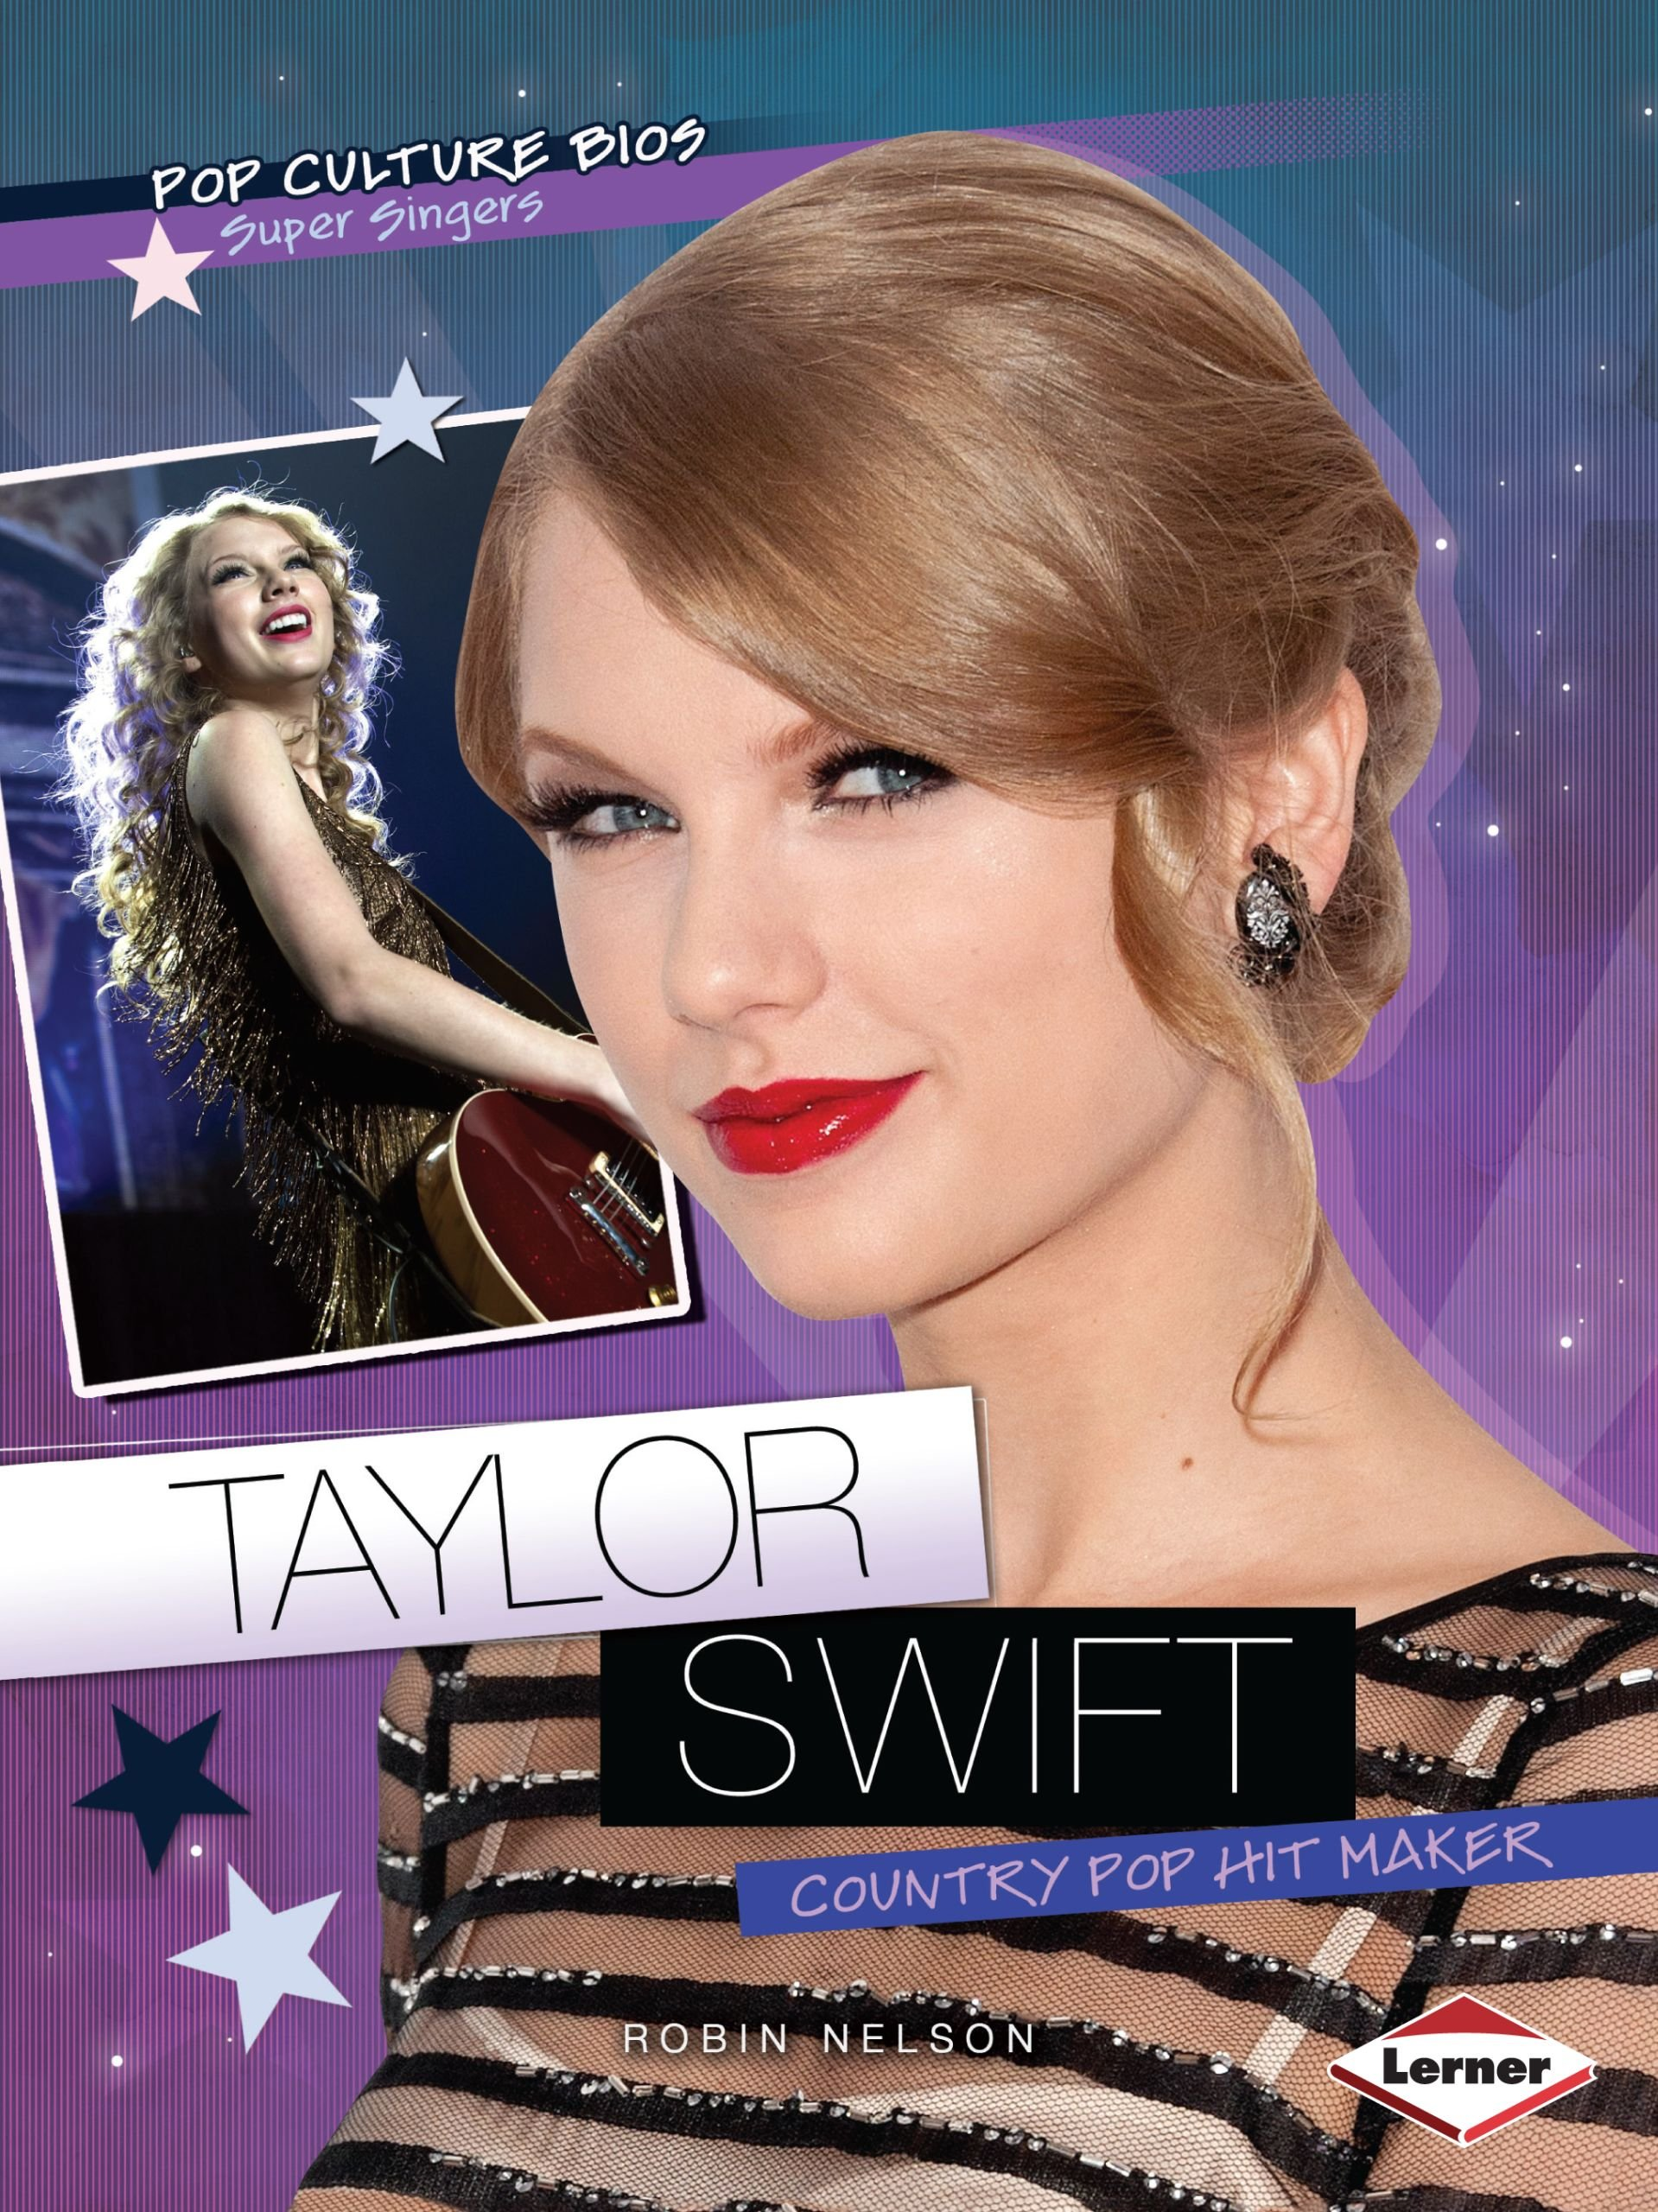 Taylor Swift: Country Pop Hit Maker (Pop Culture Bios)